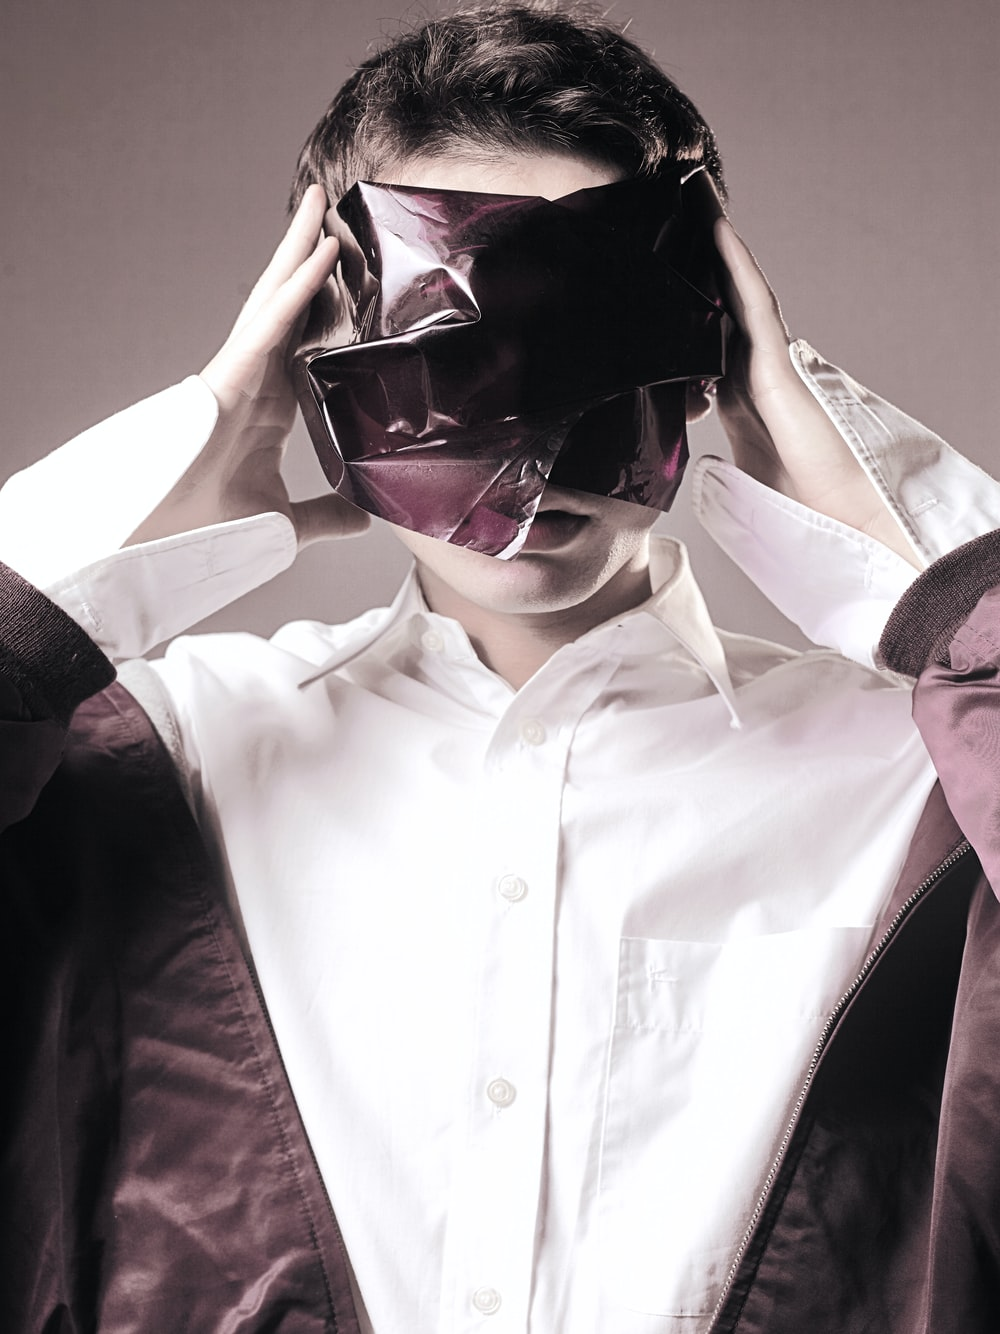 person covering its eyes close-up photography